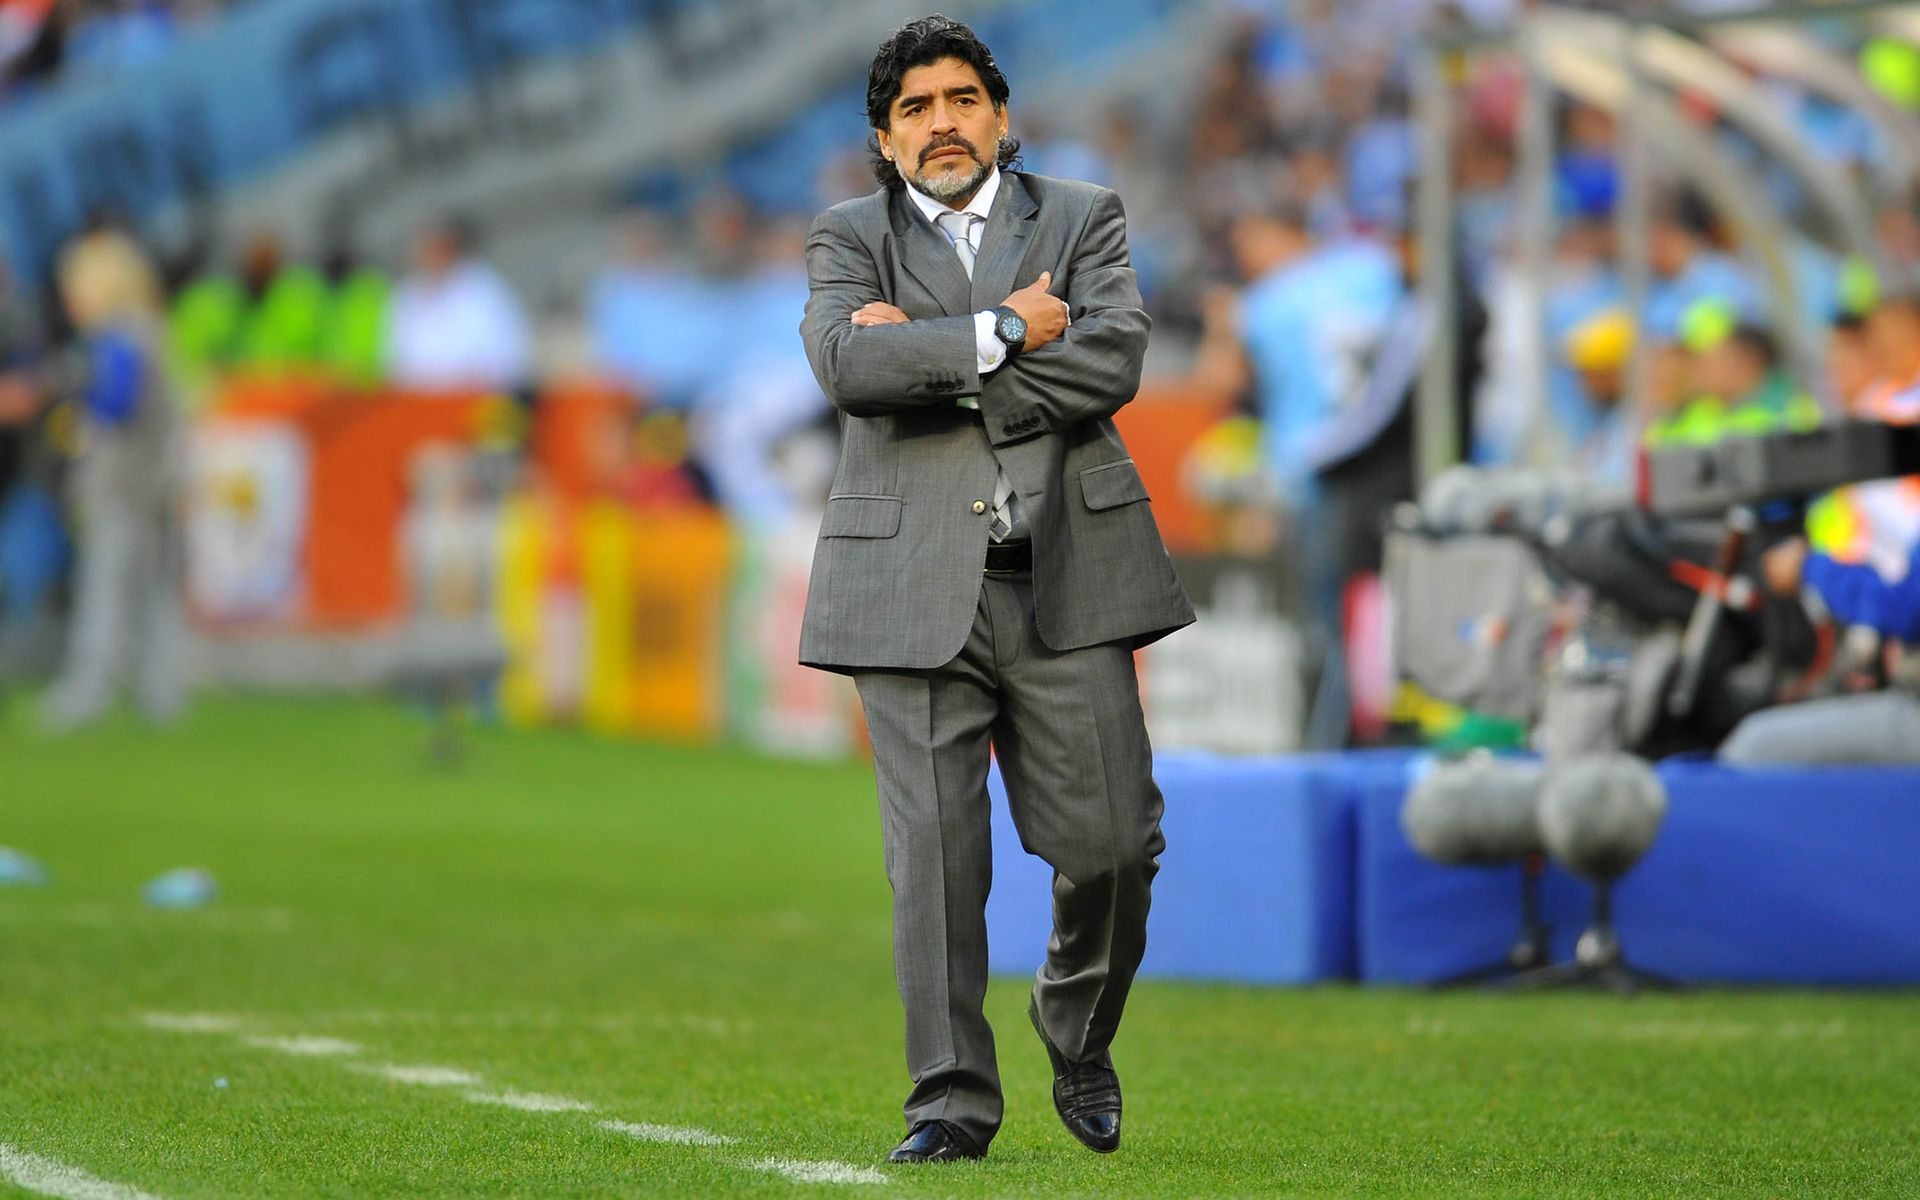 Diego Maradona wallpaper 2 images pictures download 1920x1200